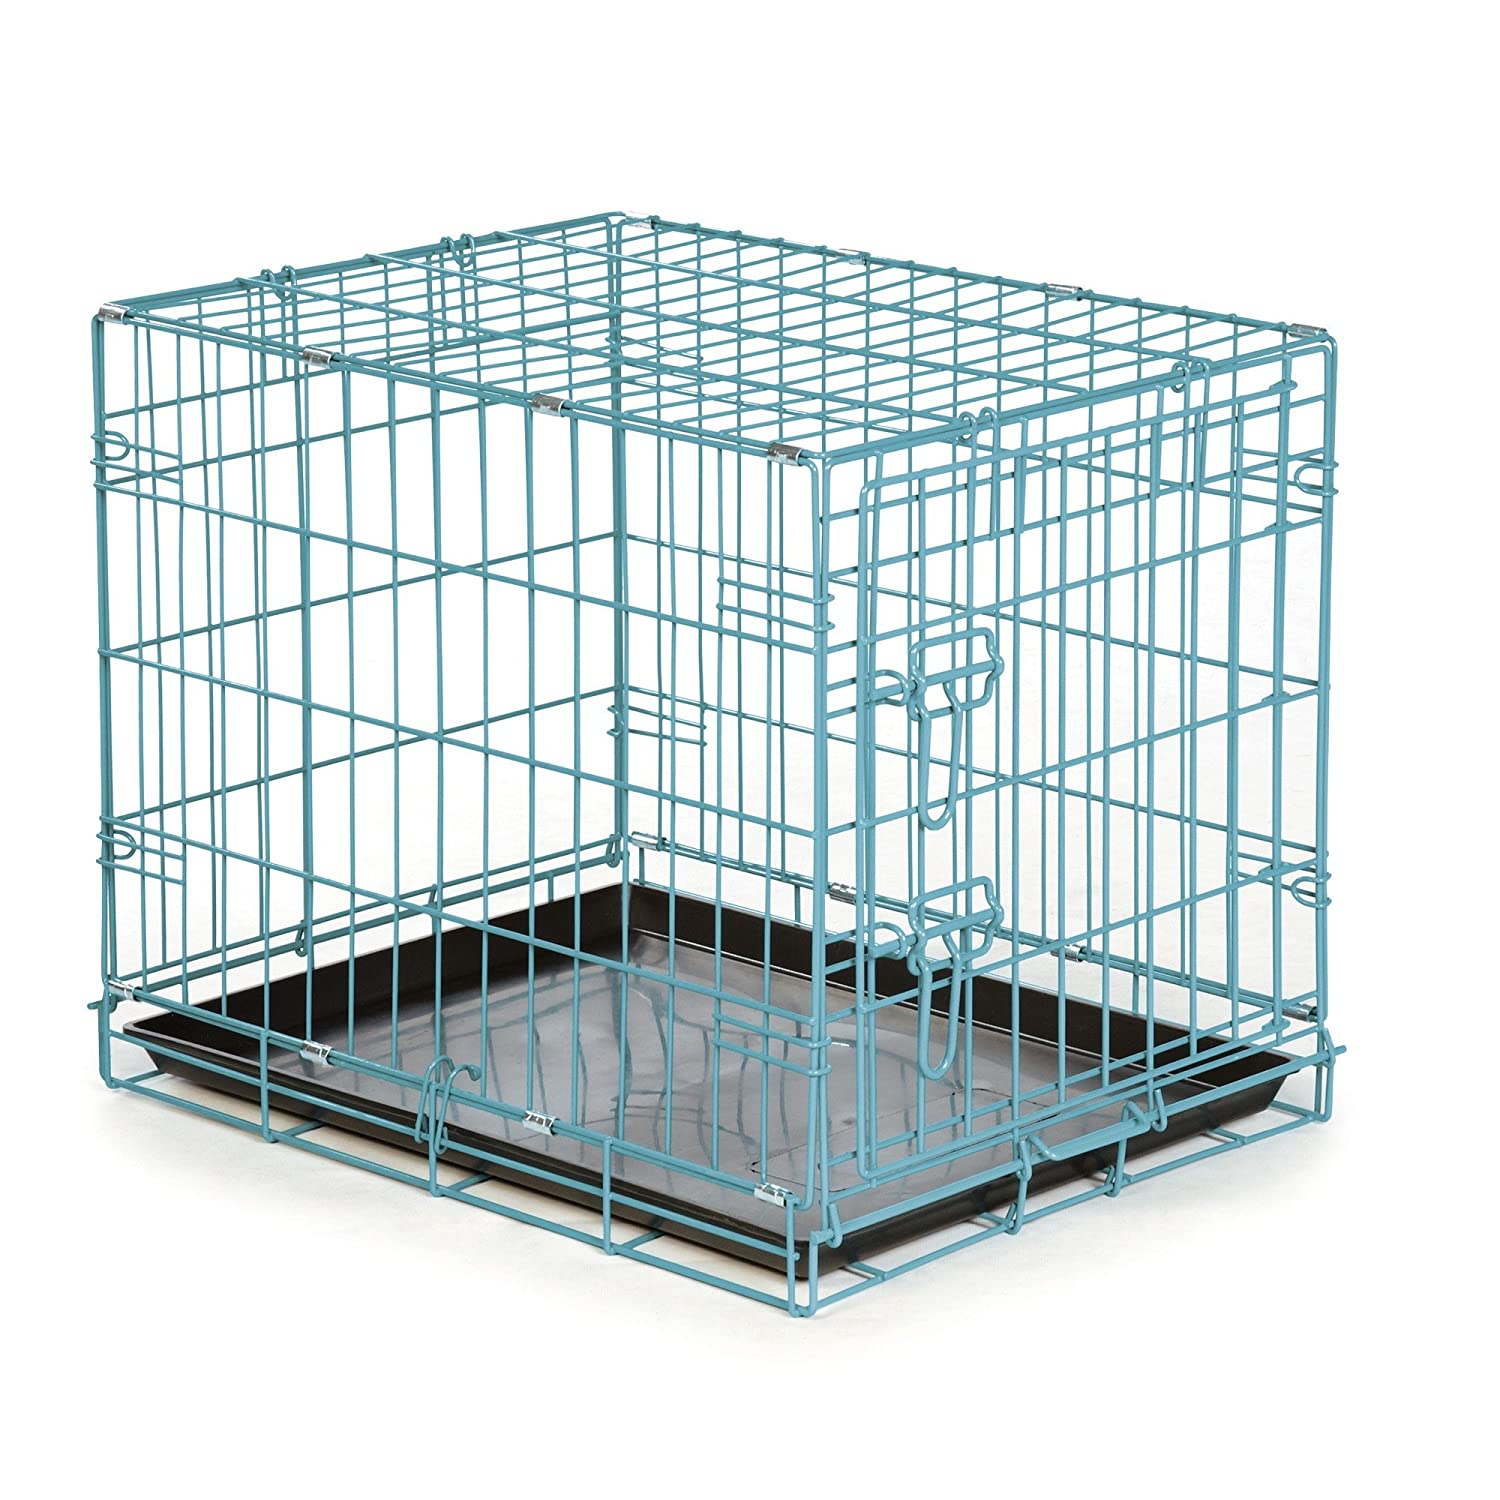 Easy Dual Latching Dog Crate, Medium/Large, Teal: Amazon.co.uk: Pet ...